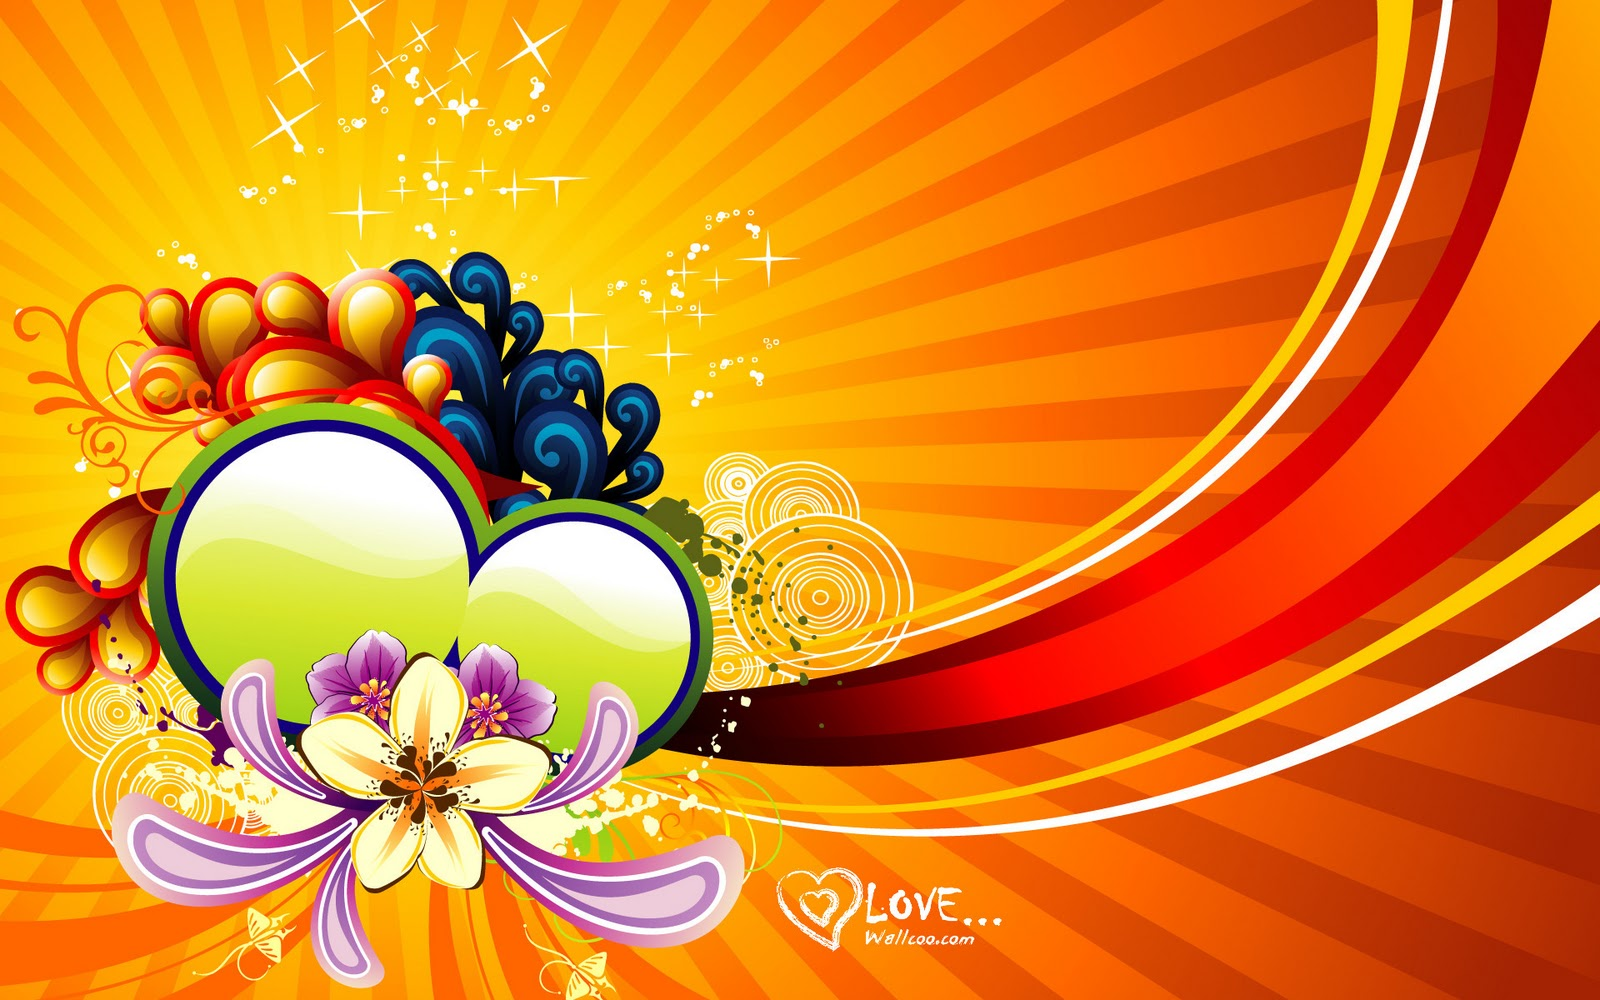 Gallery Wallpaper Design | Stylish Gallery Wallpapers